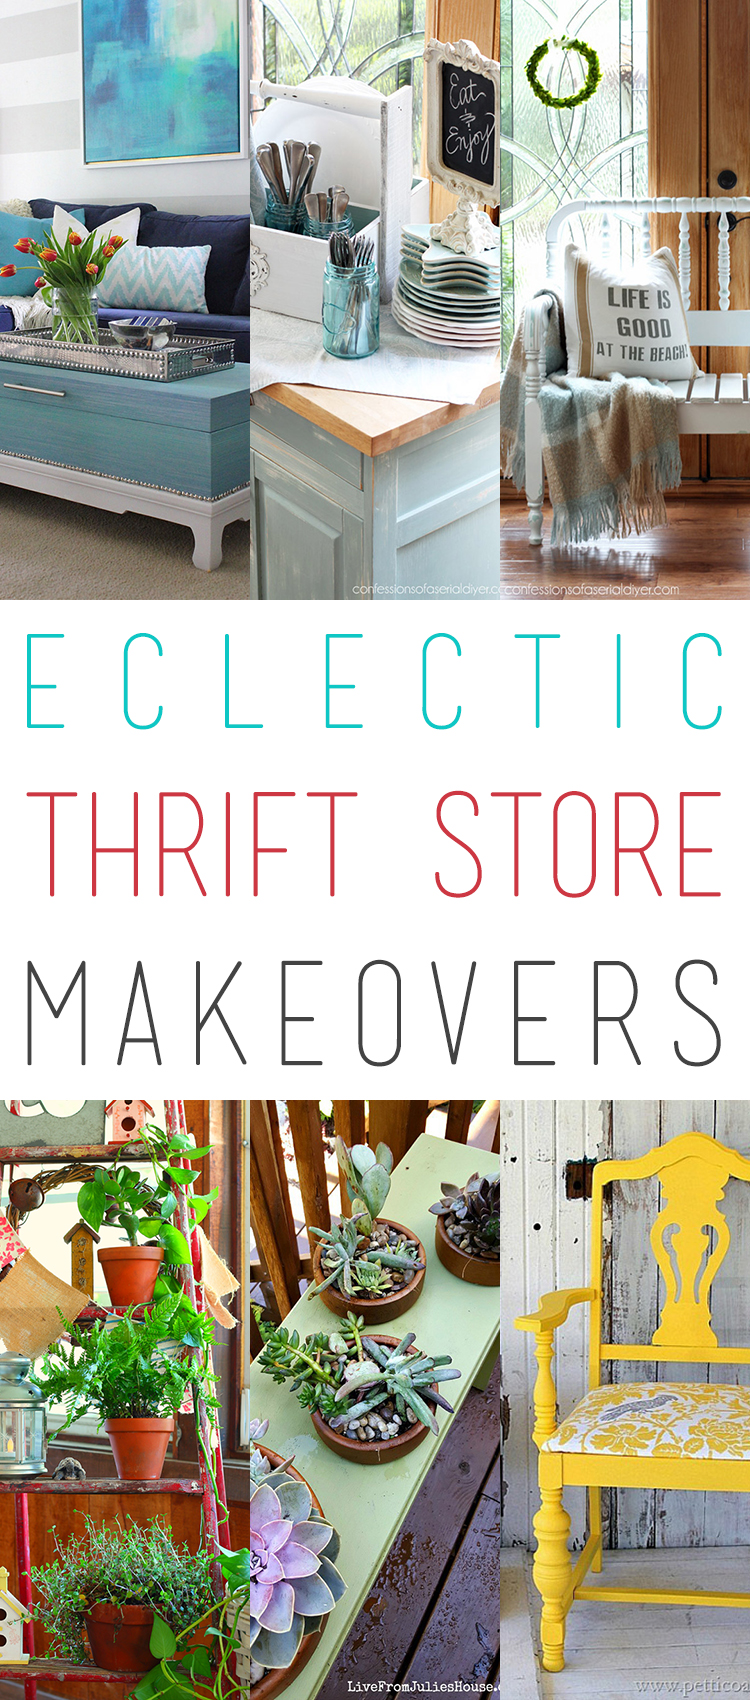 http://thecottagemarket.com/wp-content/uploads/2016/09/Thrift-TOWER-001.jpg